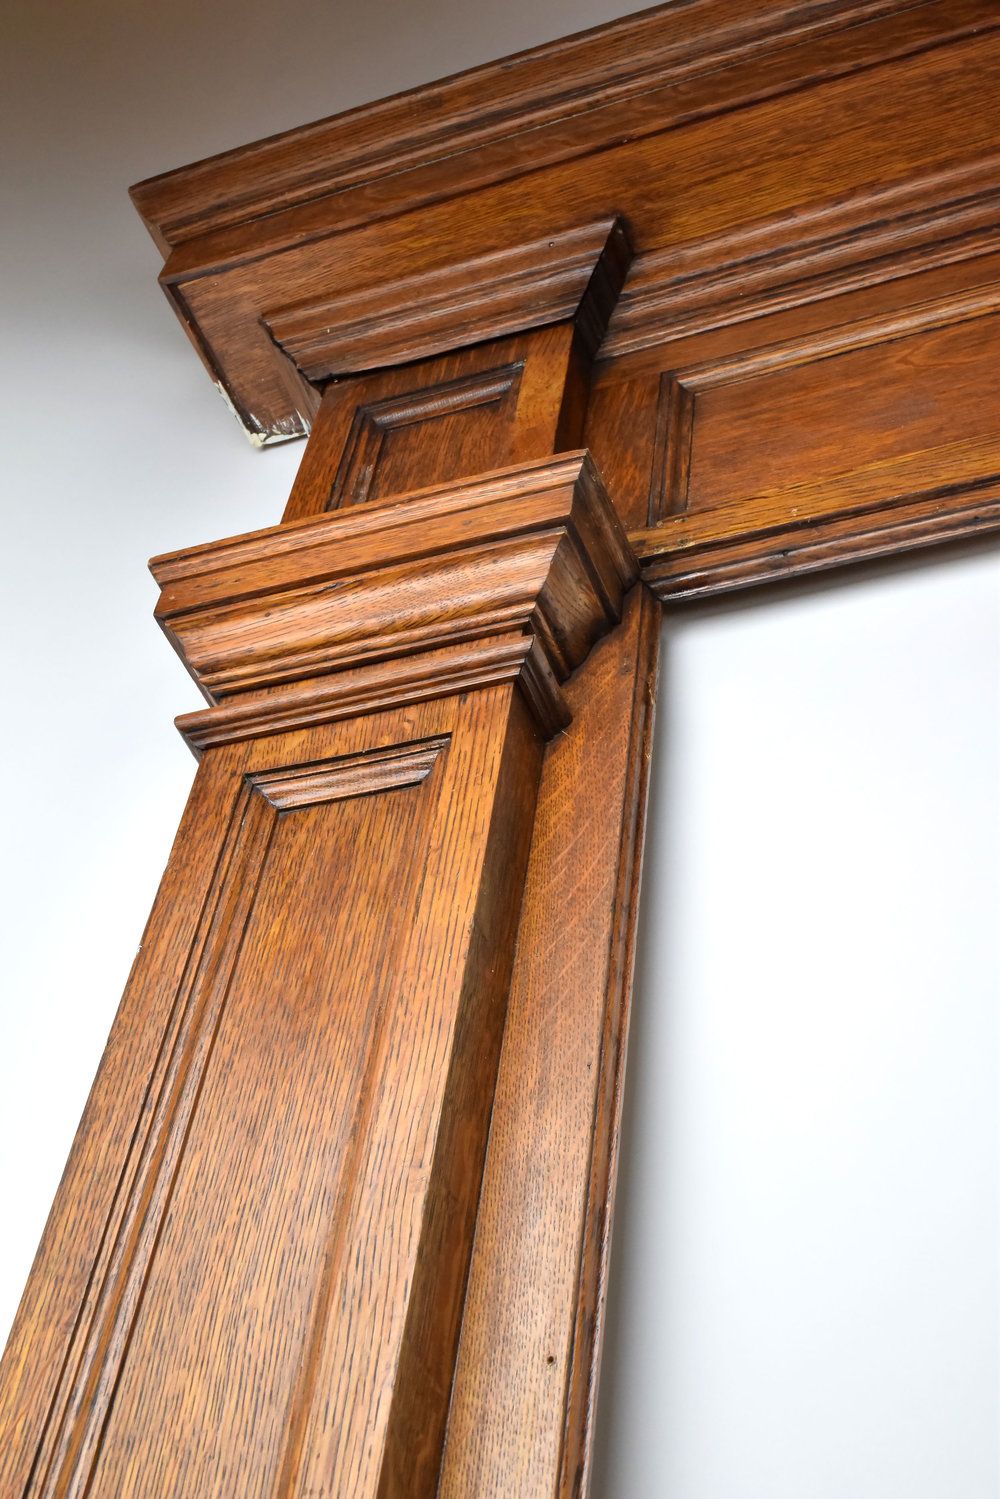 47050-walkthrough-oak-mantel-wood-detail.jpg